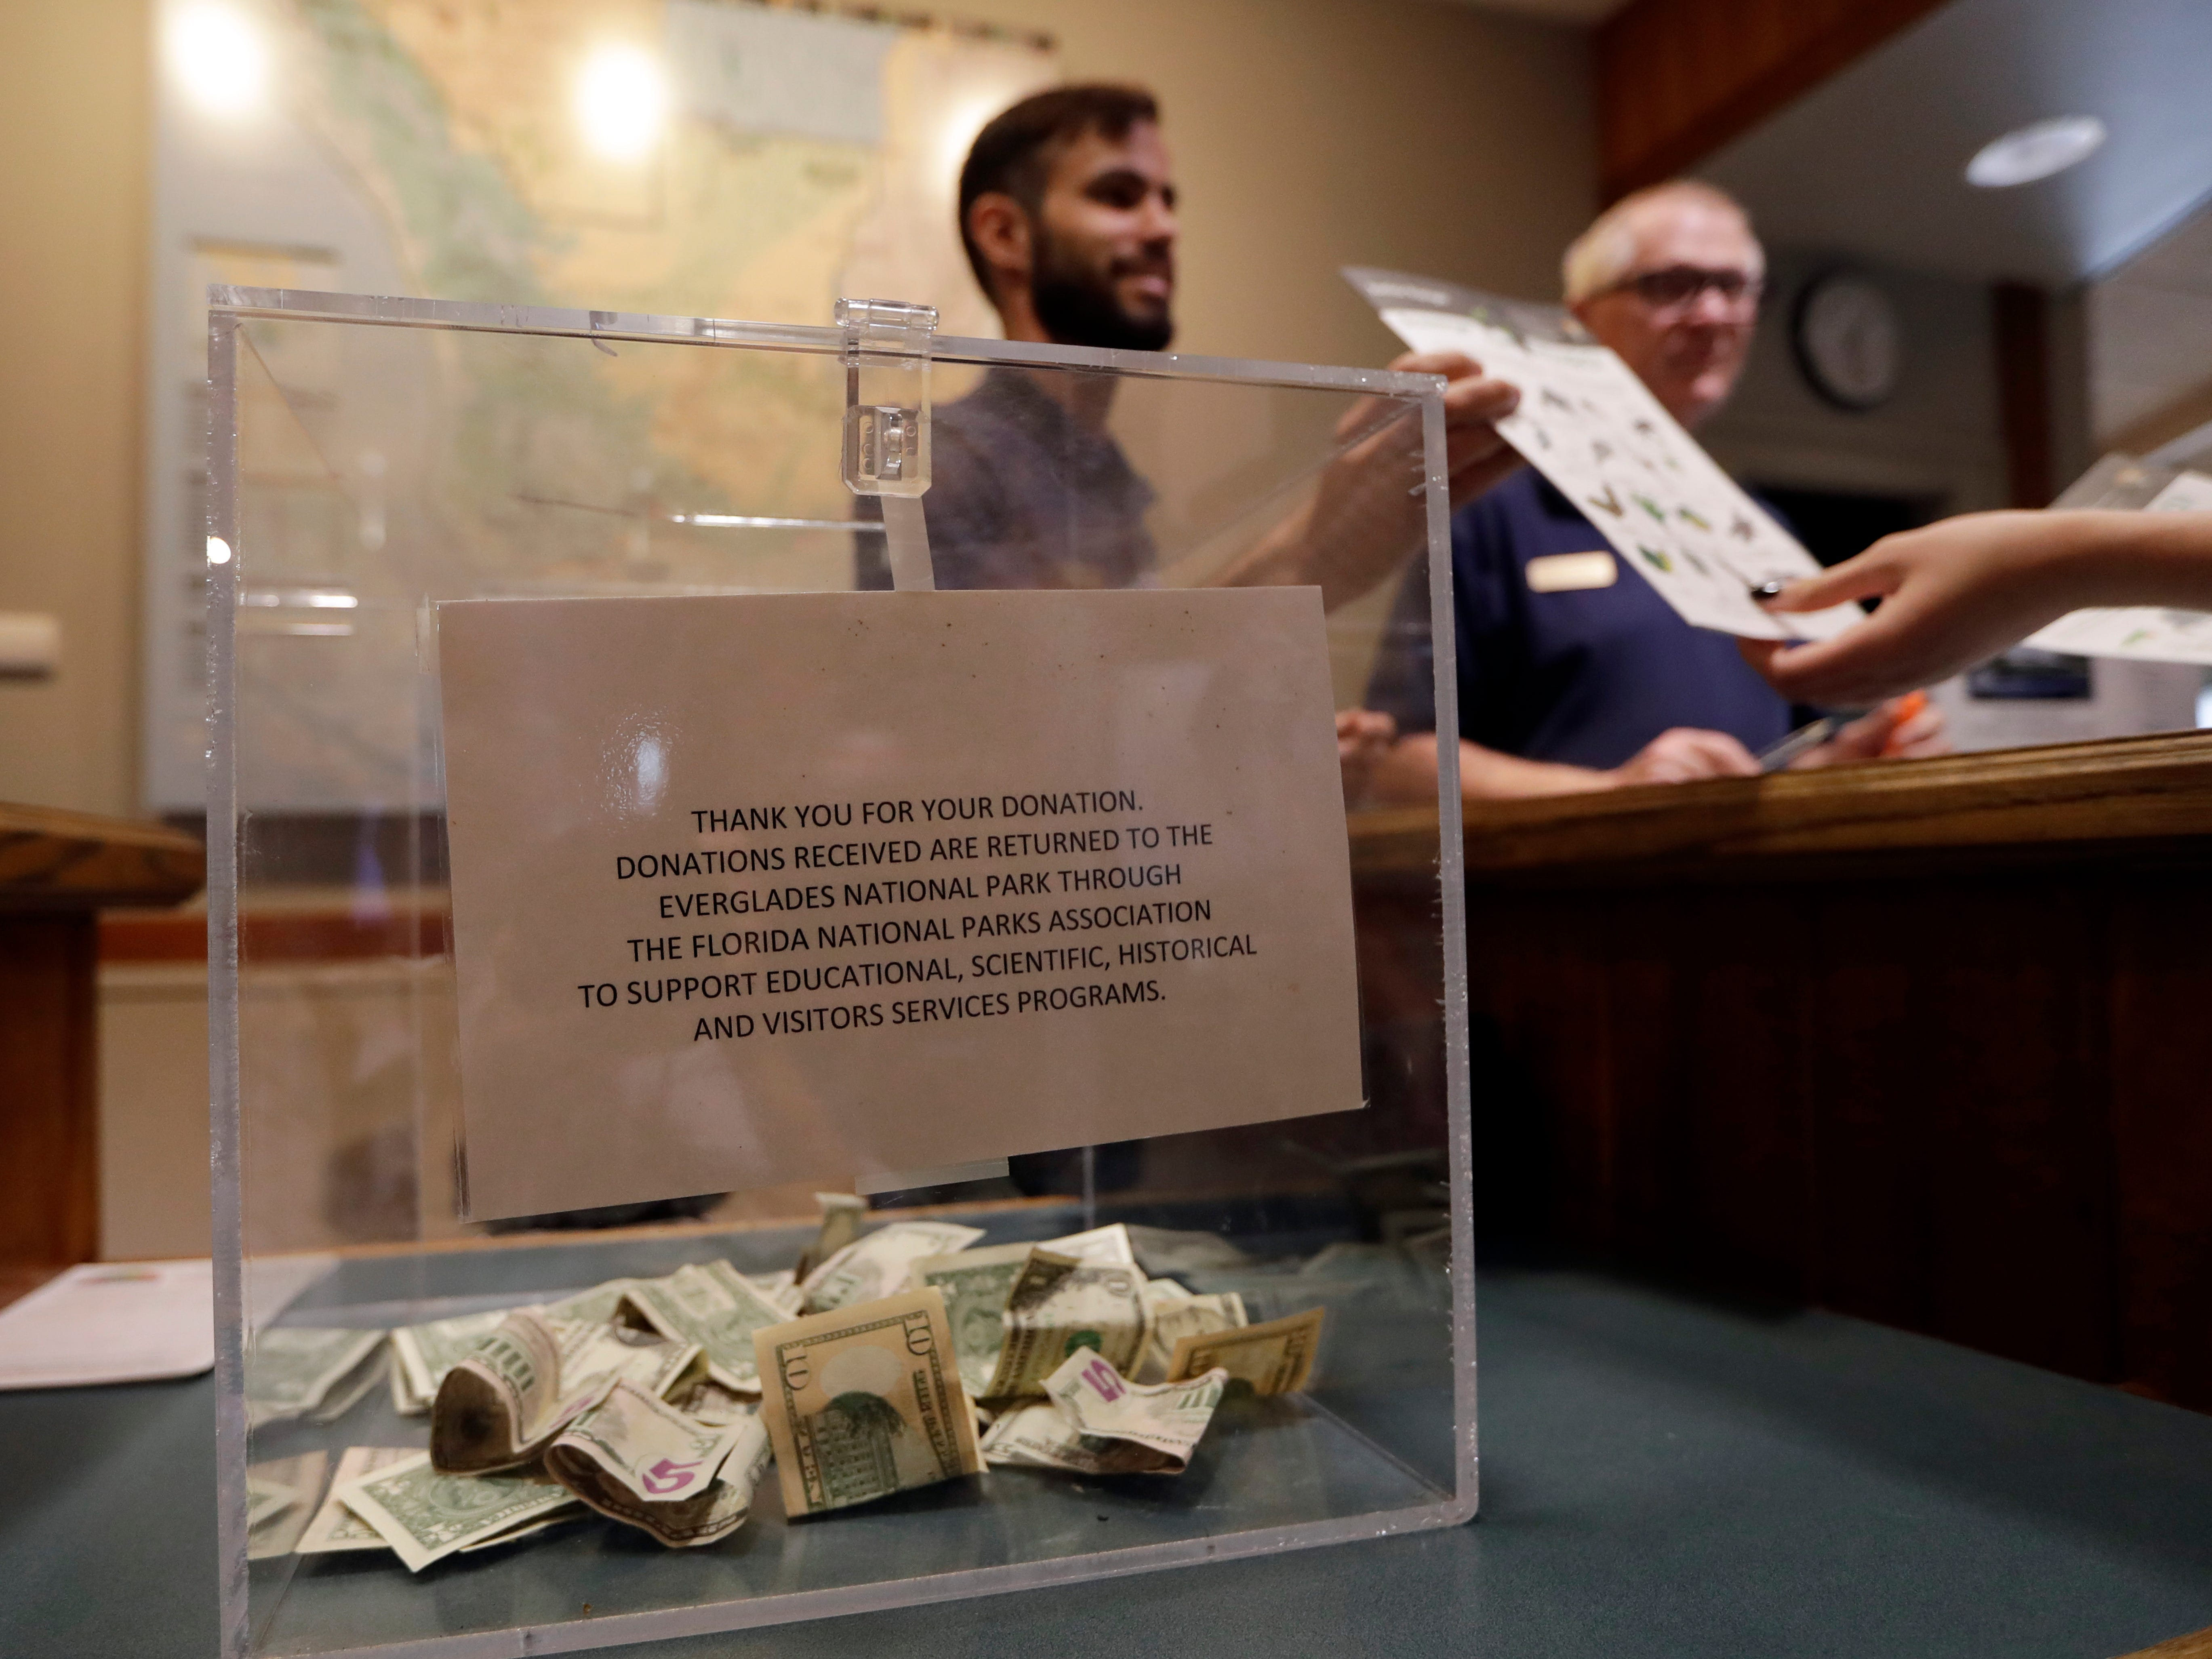 A donation box sits on the counter as Dany Garcia speaks with visitors at the Ernest F. Coe Visitor Center in Everglades National Park, Jan. 4, 2019, in Homestead, Fla. Garcia is being paid by the Florida National Parks Association to work in the center during the partial government shutdown. As the shutdown drags on, private organizations, local businesses, volunteers and state governments are putting up the money and manpower to keep national parks across the U.S. open, safe and clean for visitors.